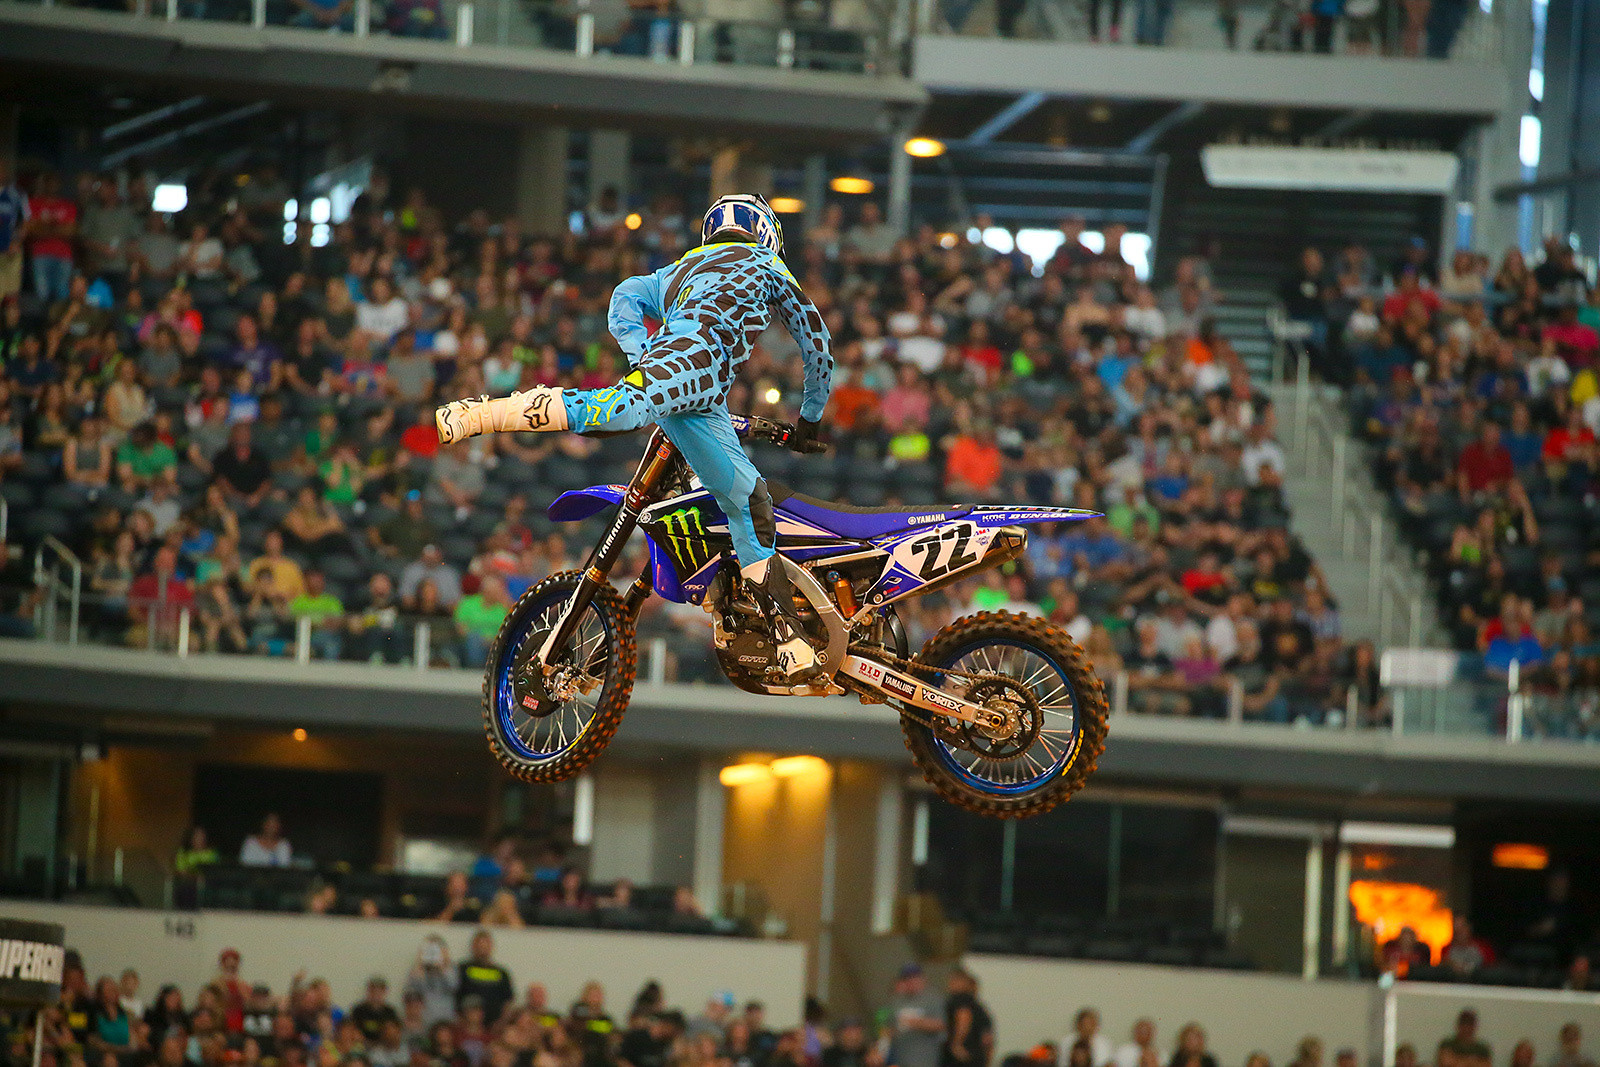 Photo Blast: Arlington, and Chad Reed during rider introductions - Photo Blast: Arlington - Motocross Pictures - Vital MX